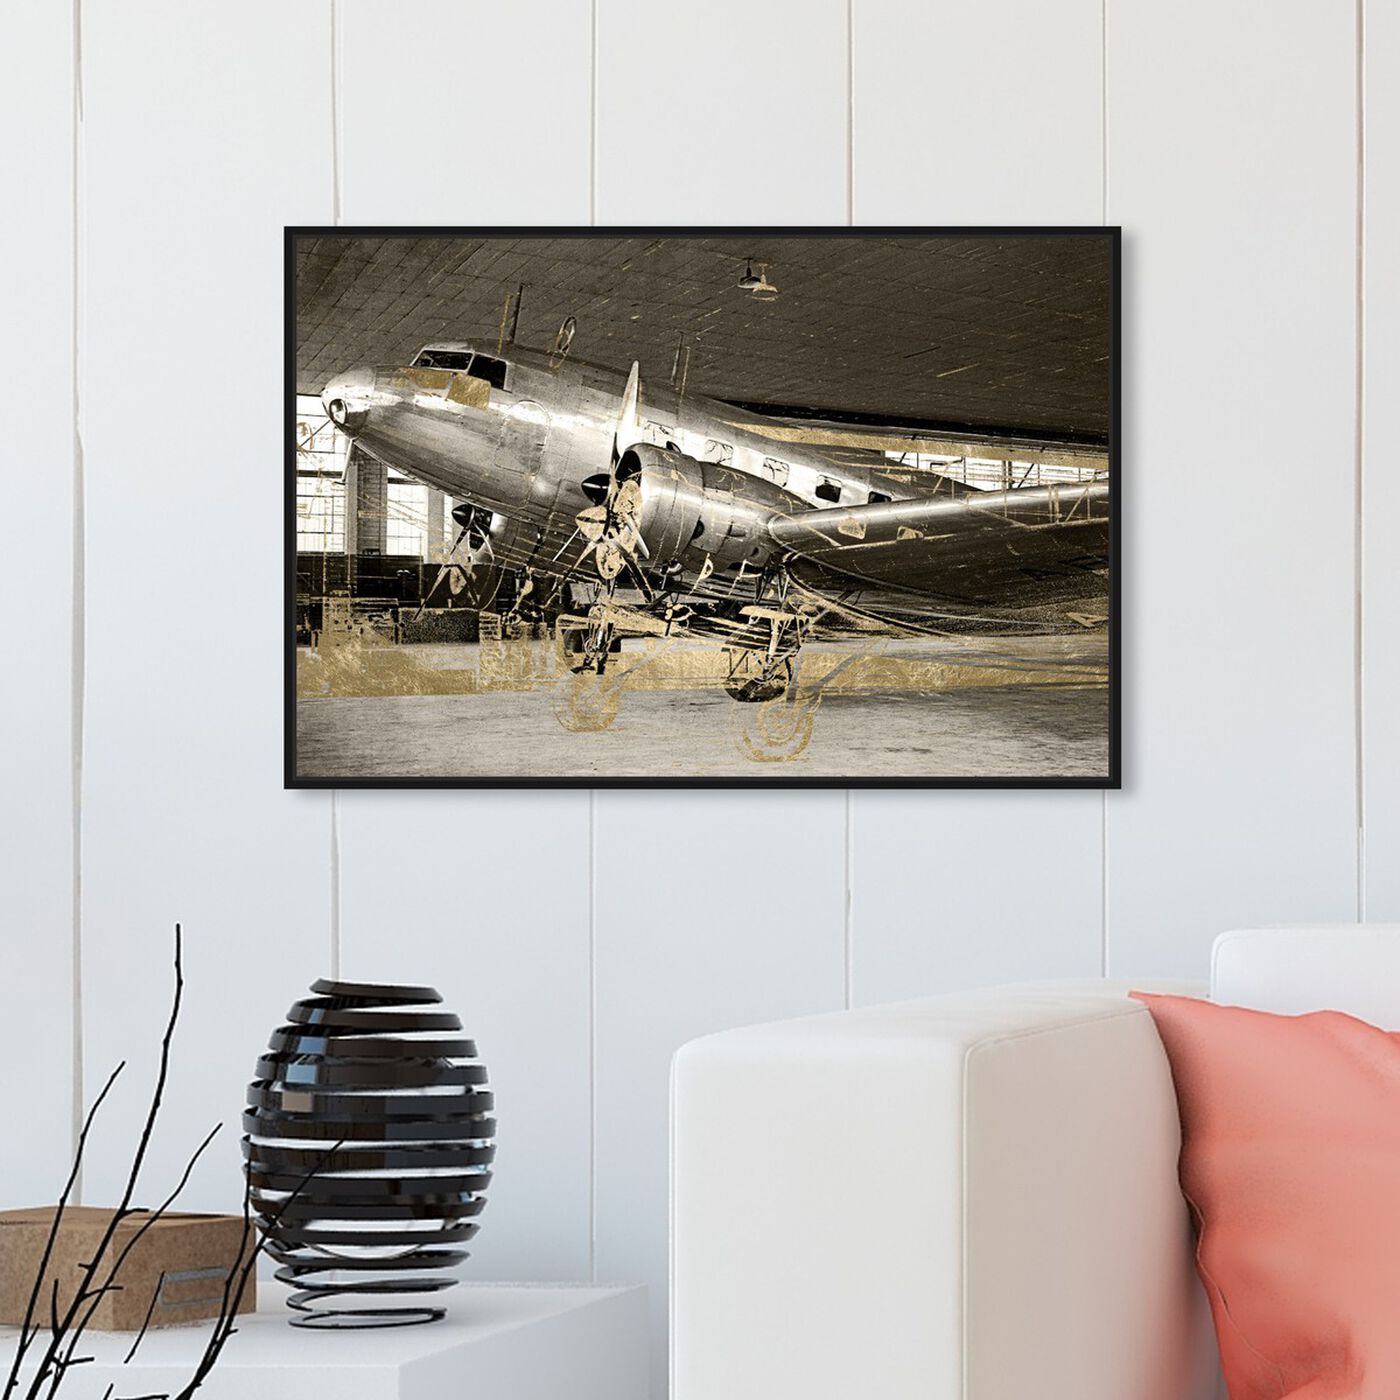 Hanging view of Aviation featuring transportation and airplanes art.